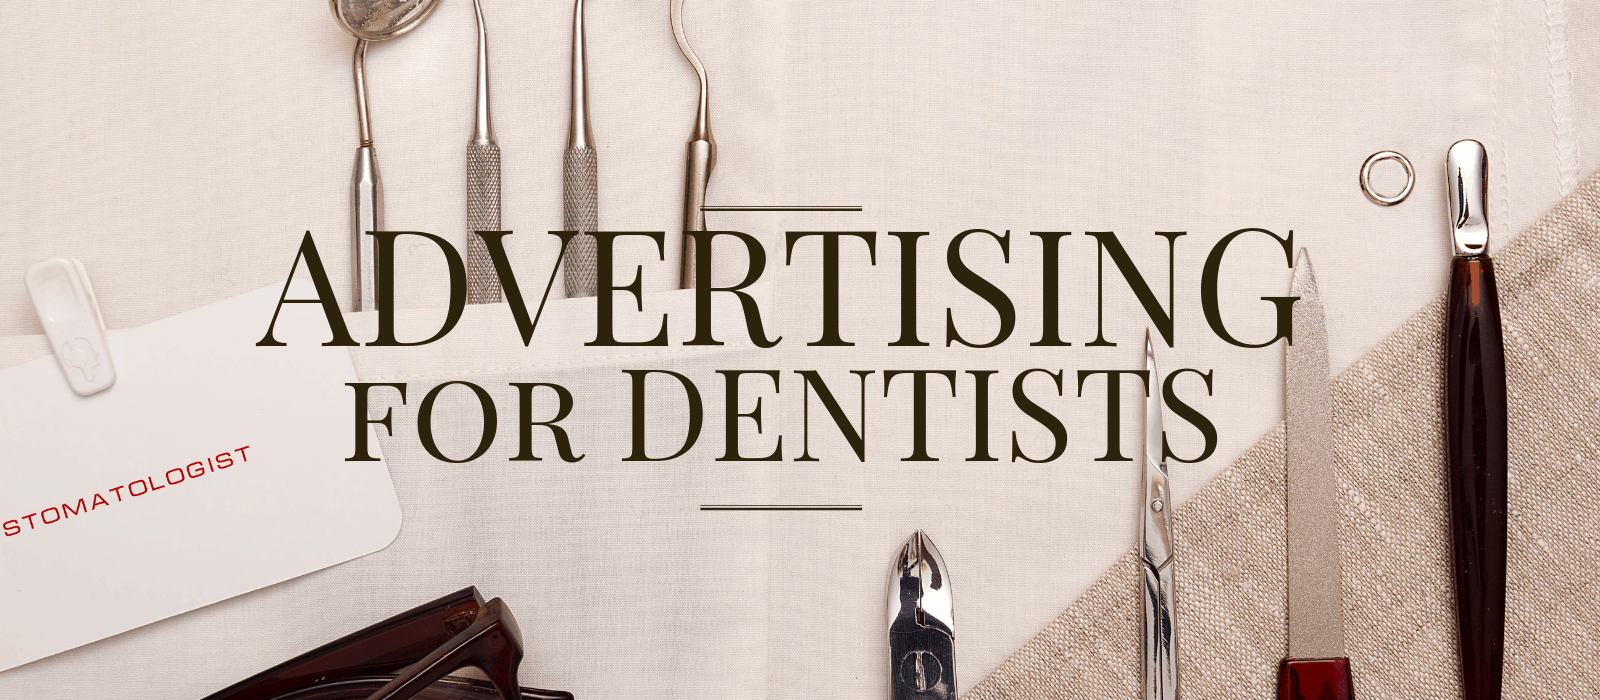 Advertising Strategies for Dentists